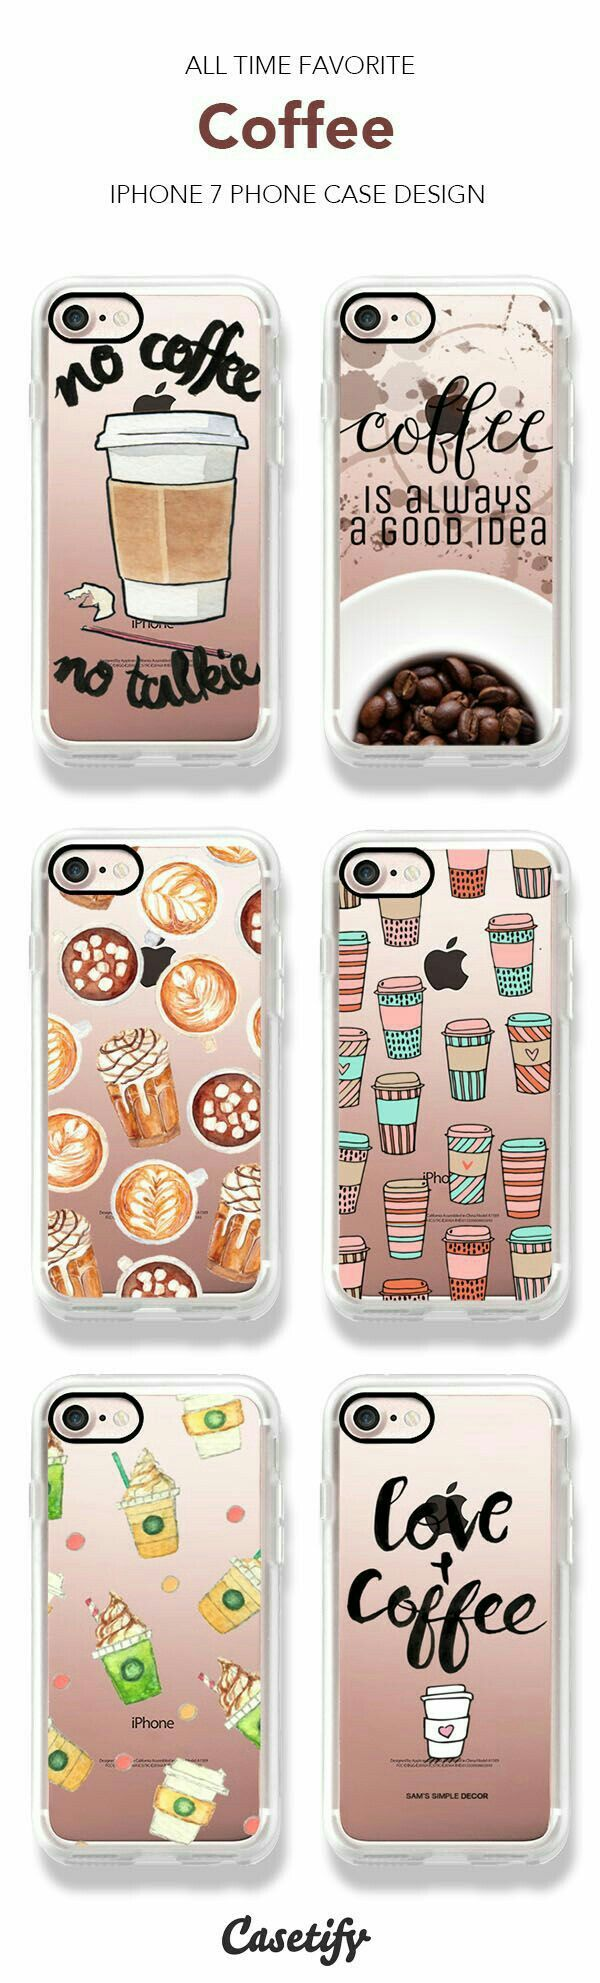 Epingle Par Hacquin Sur Coque De Telephone Apple Coque Coque De